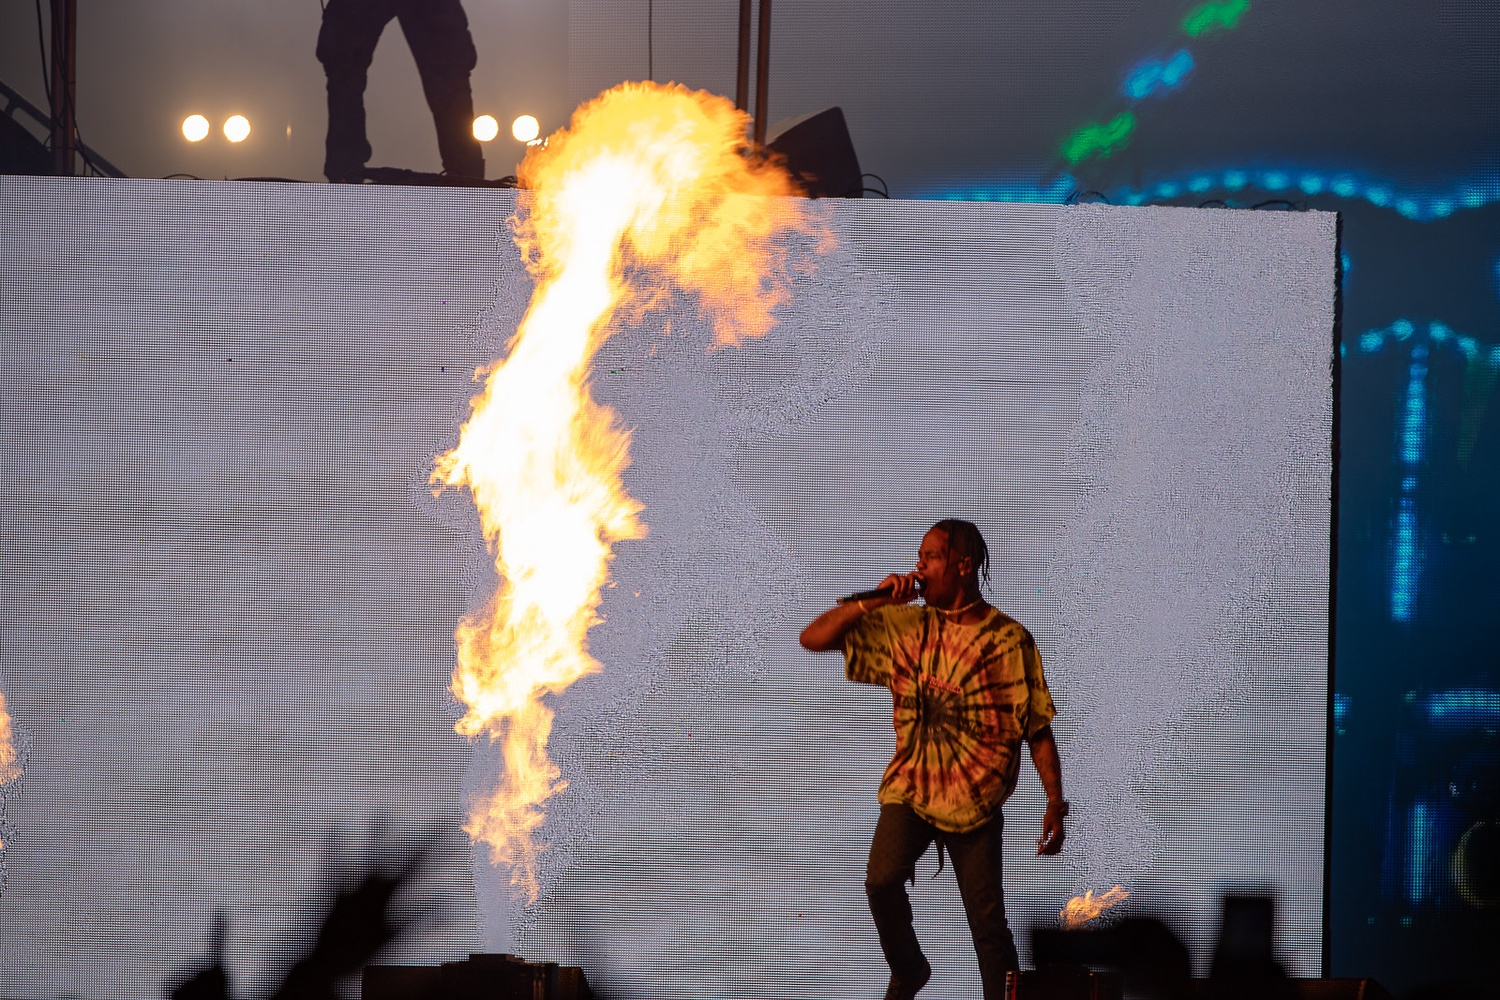 From Boston Calling 2019 Travis Scott Is The Highest In The Room Arts The Harvard Crimson The visuals for it was published the same day. from boston calling 2019 travis scott